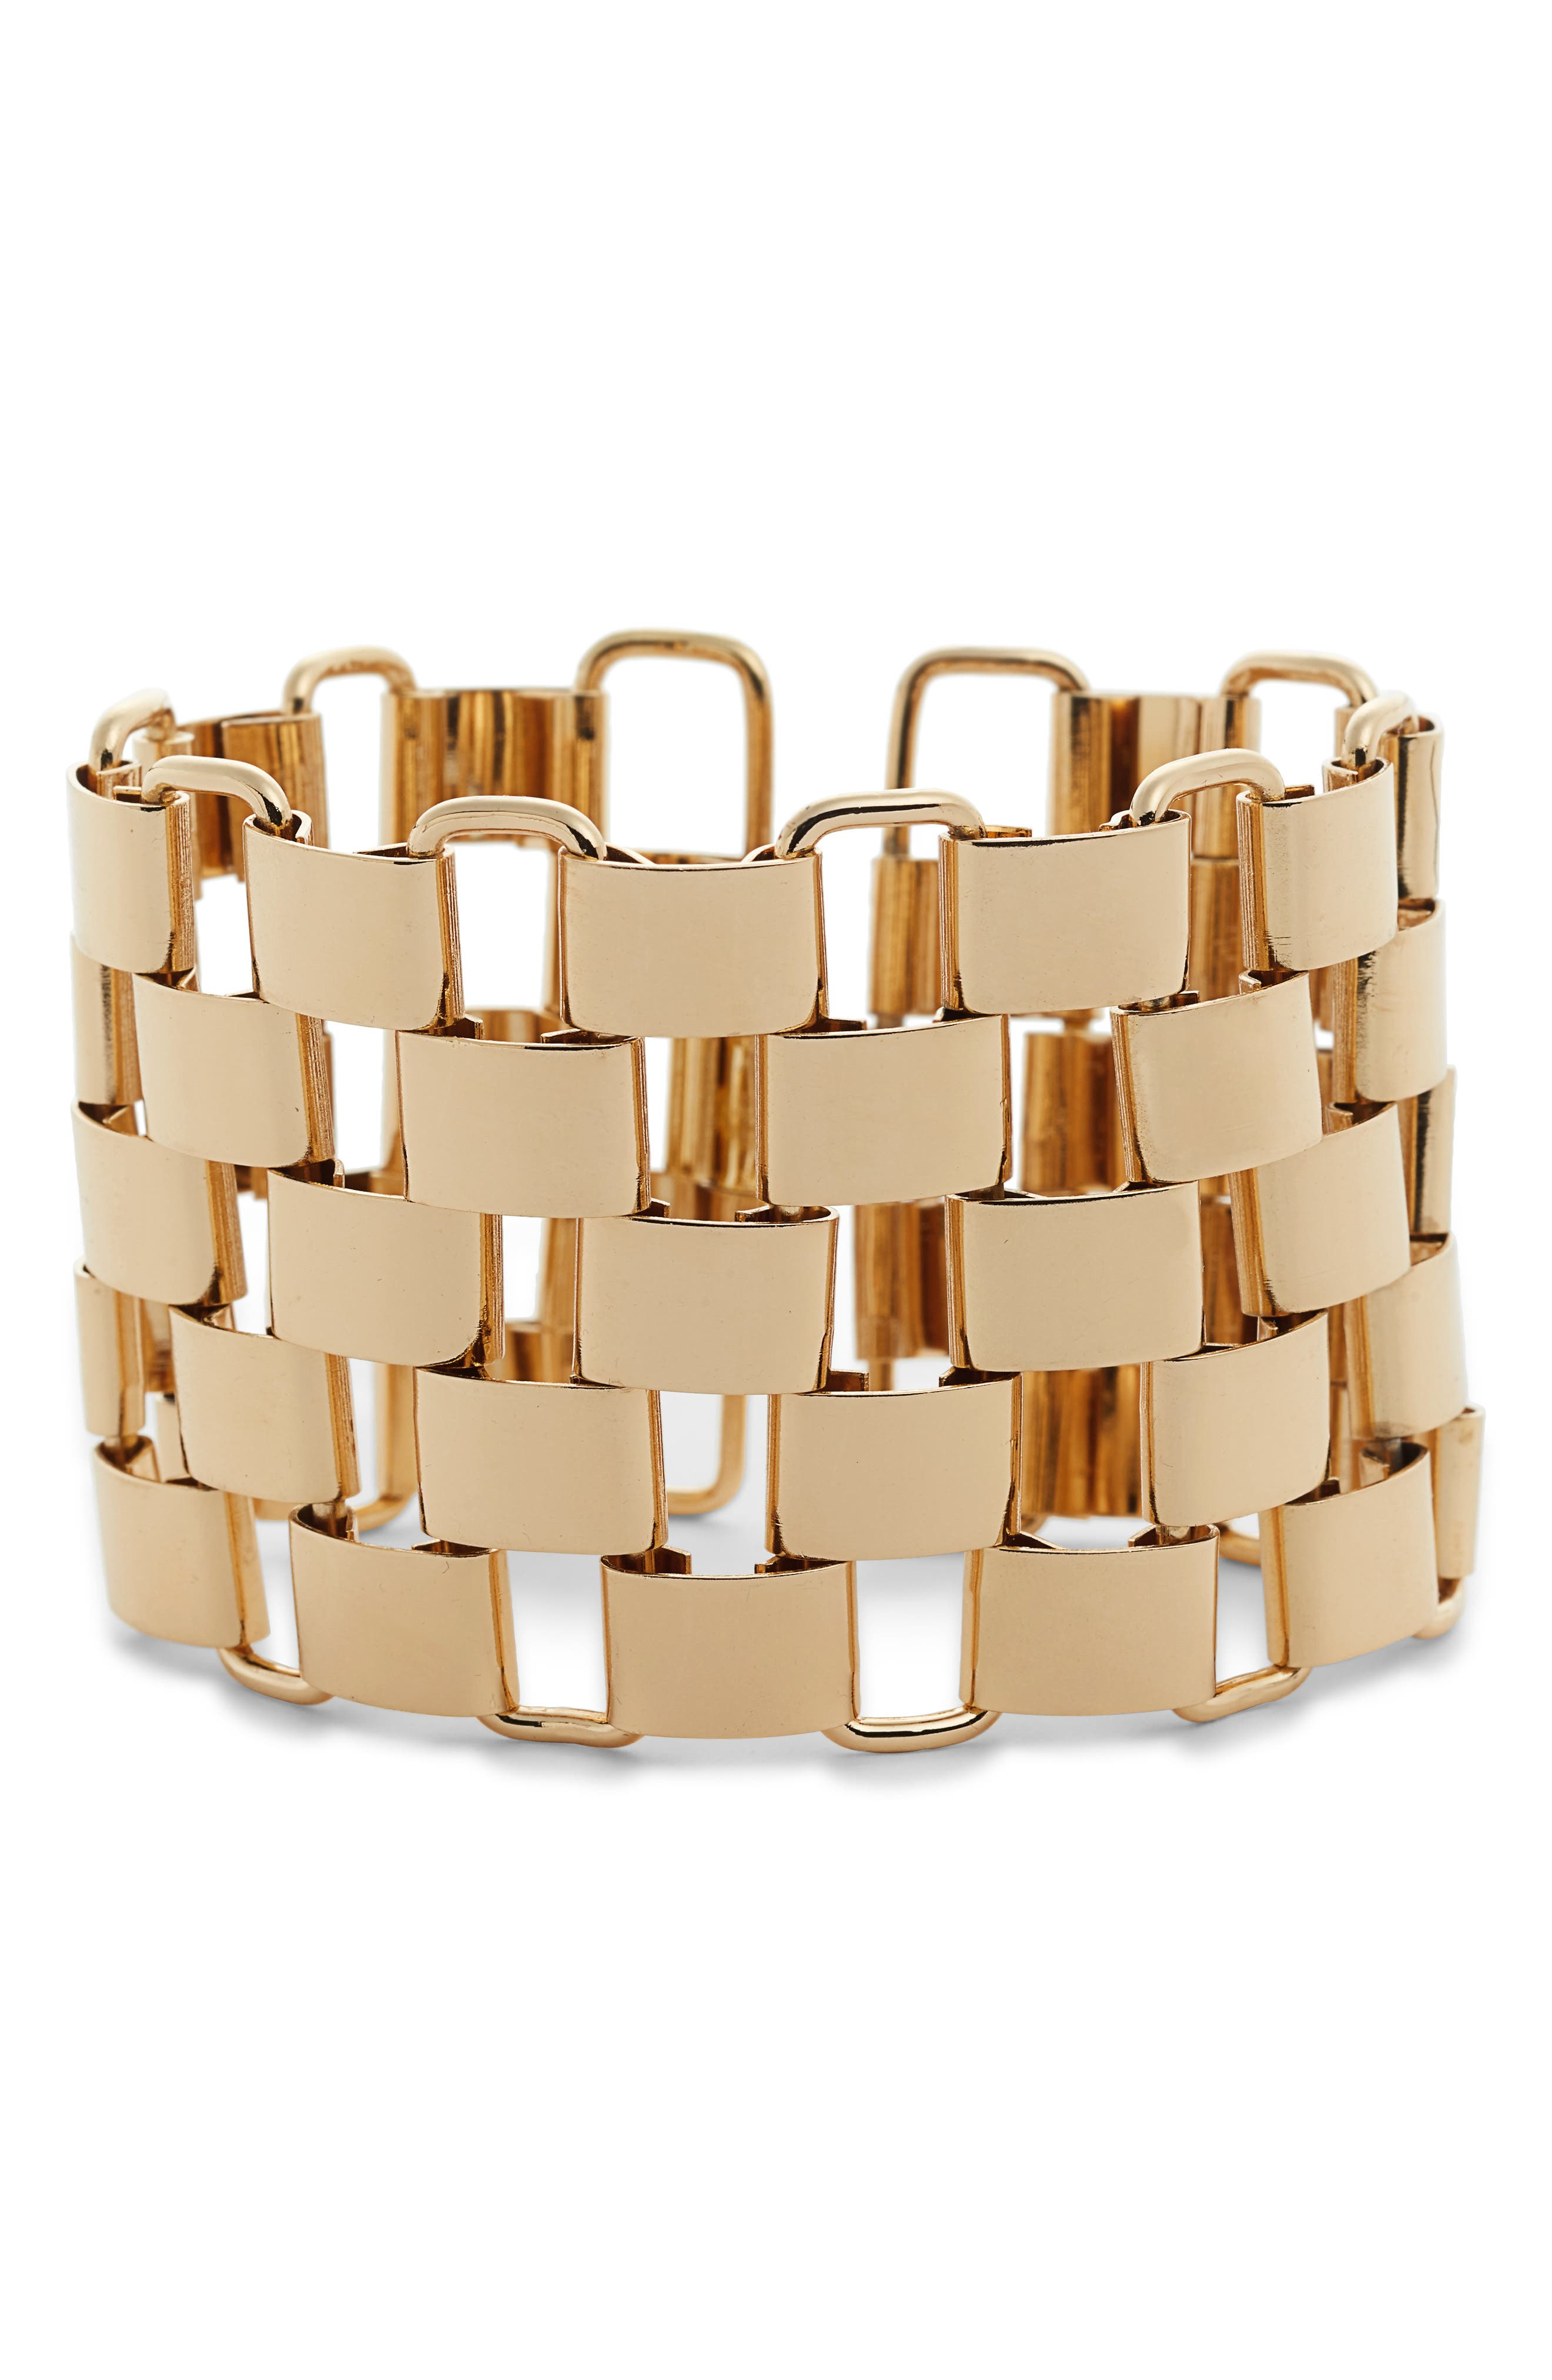 Chunky Statement Cuff Bracelet Unique Gifts For Women